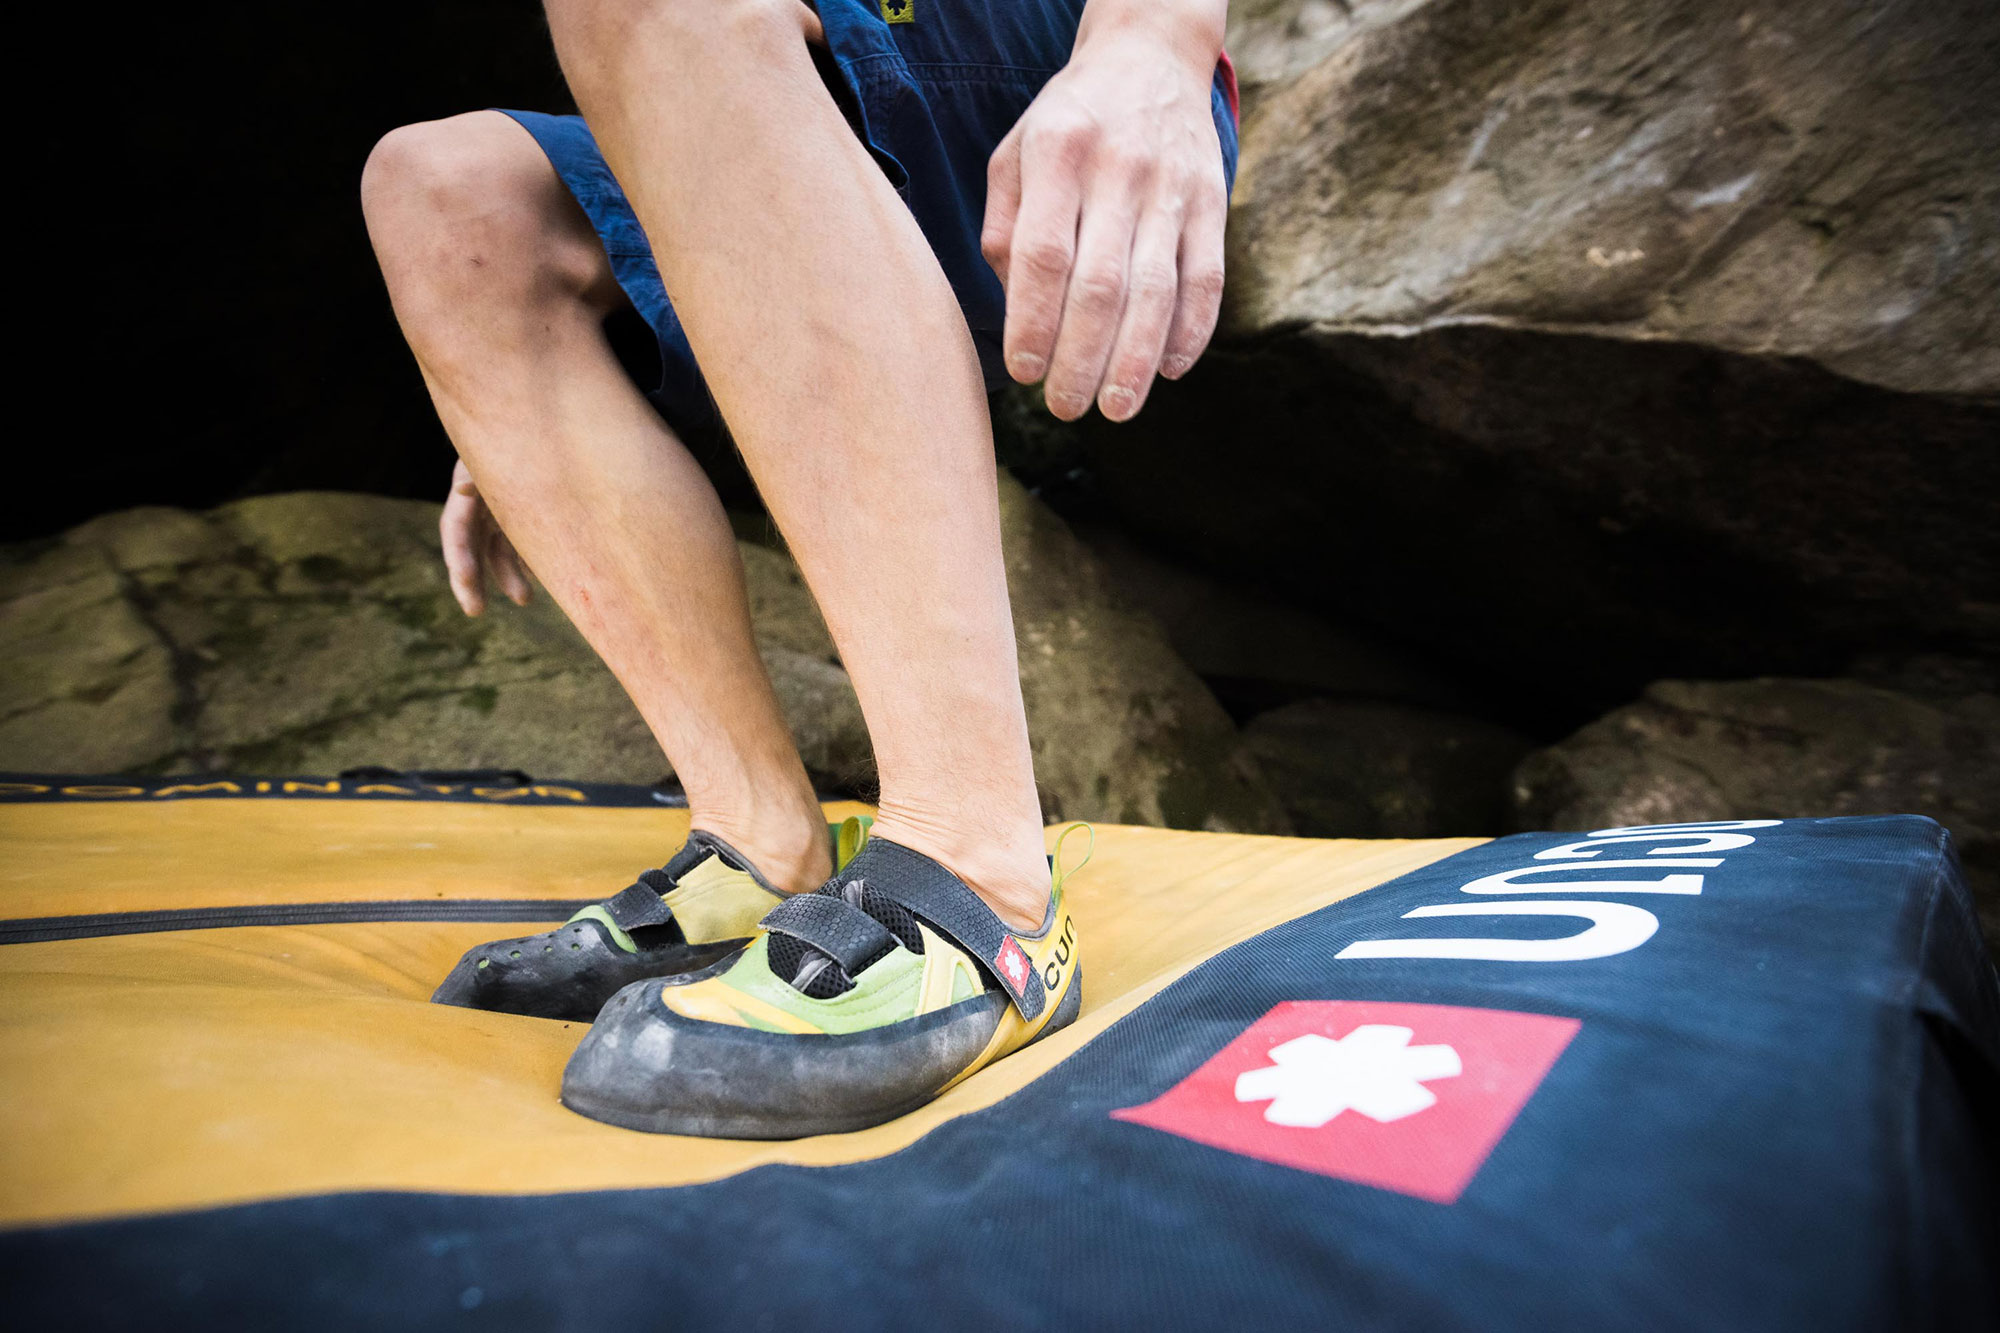 Ocun Klettergurt Test : Ocun paddy dominator crashpad im test